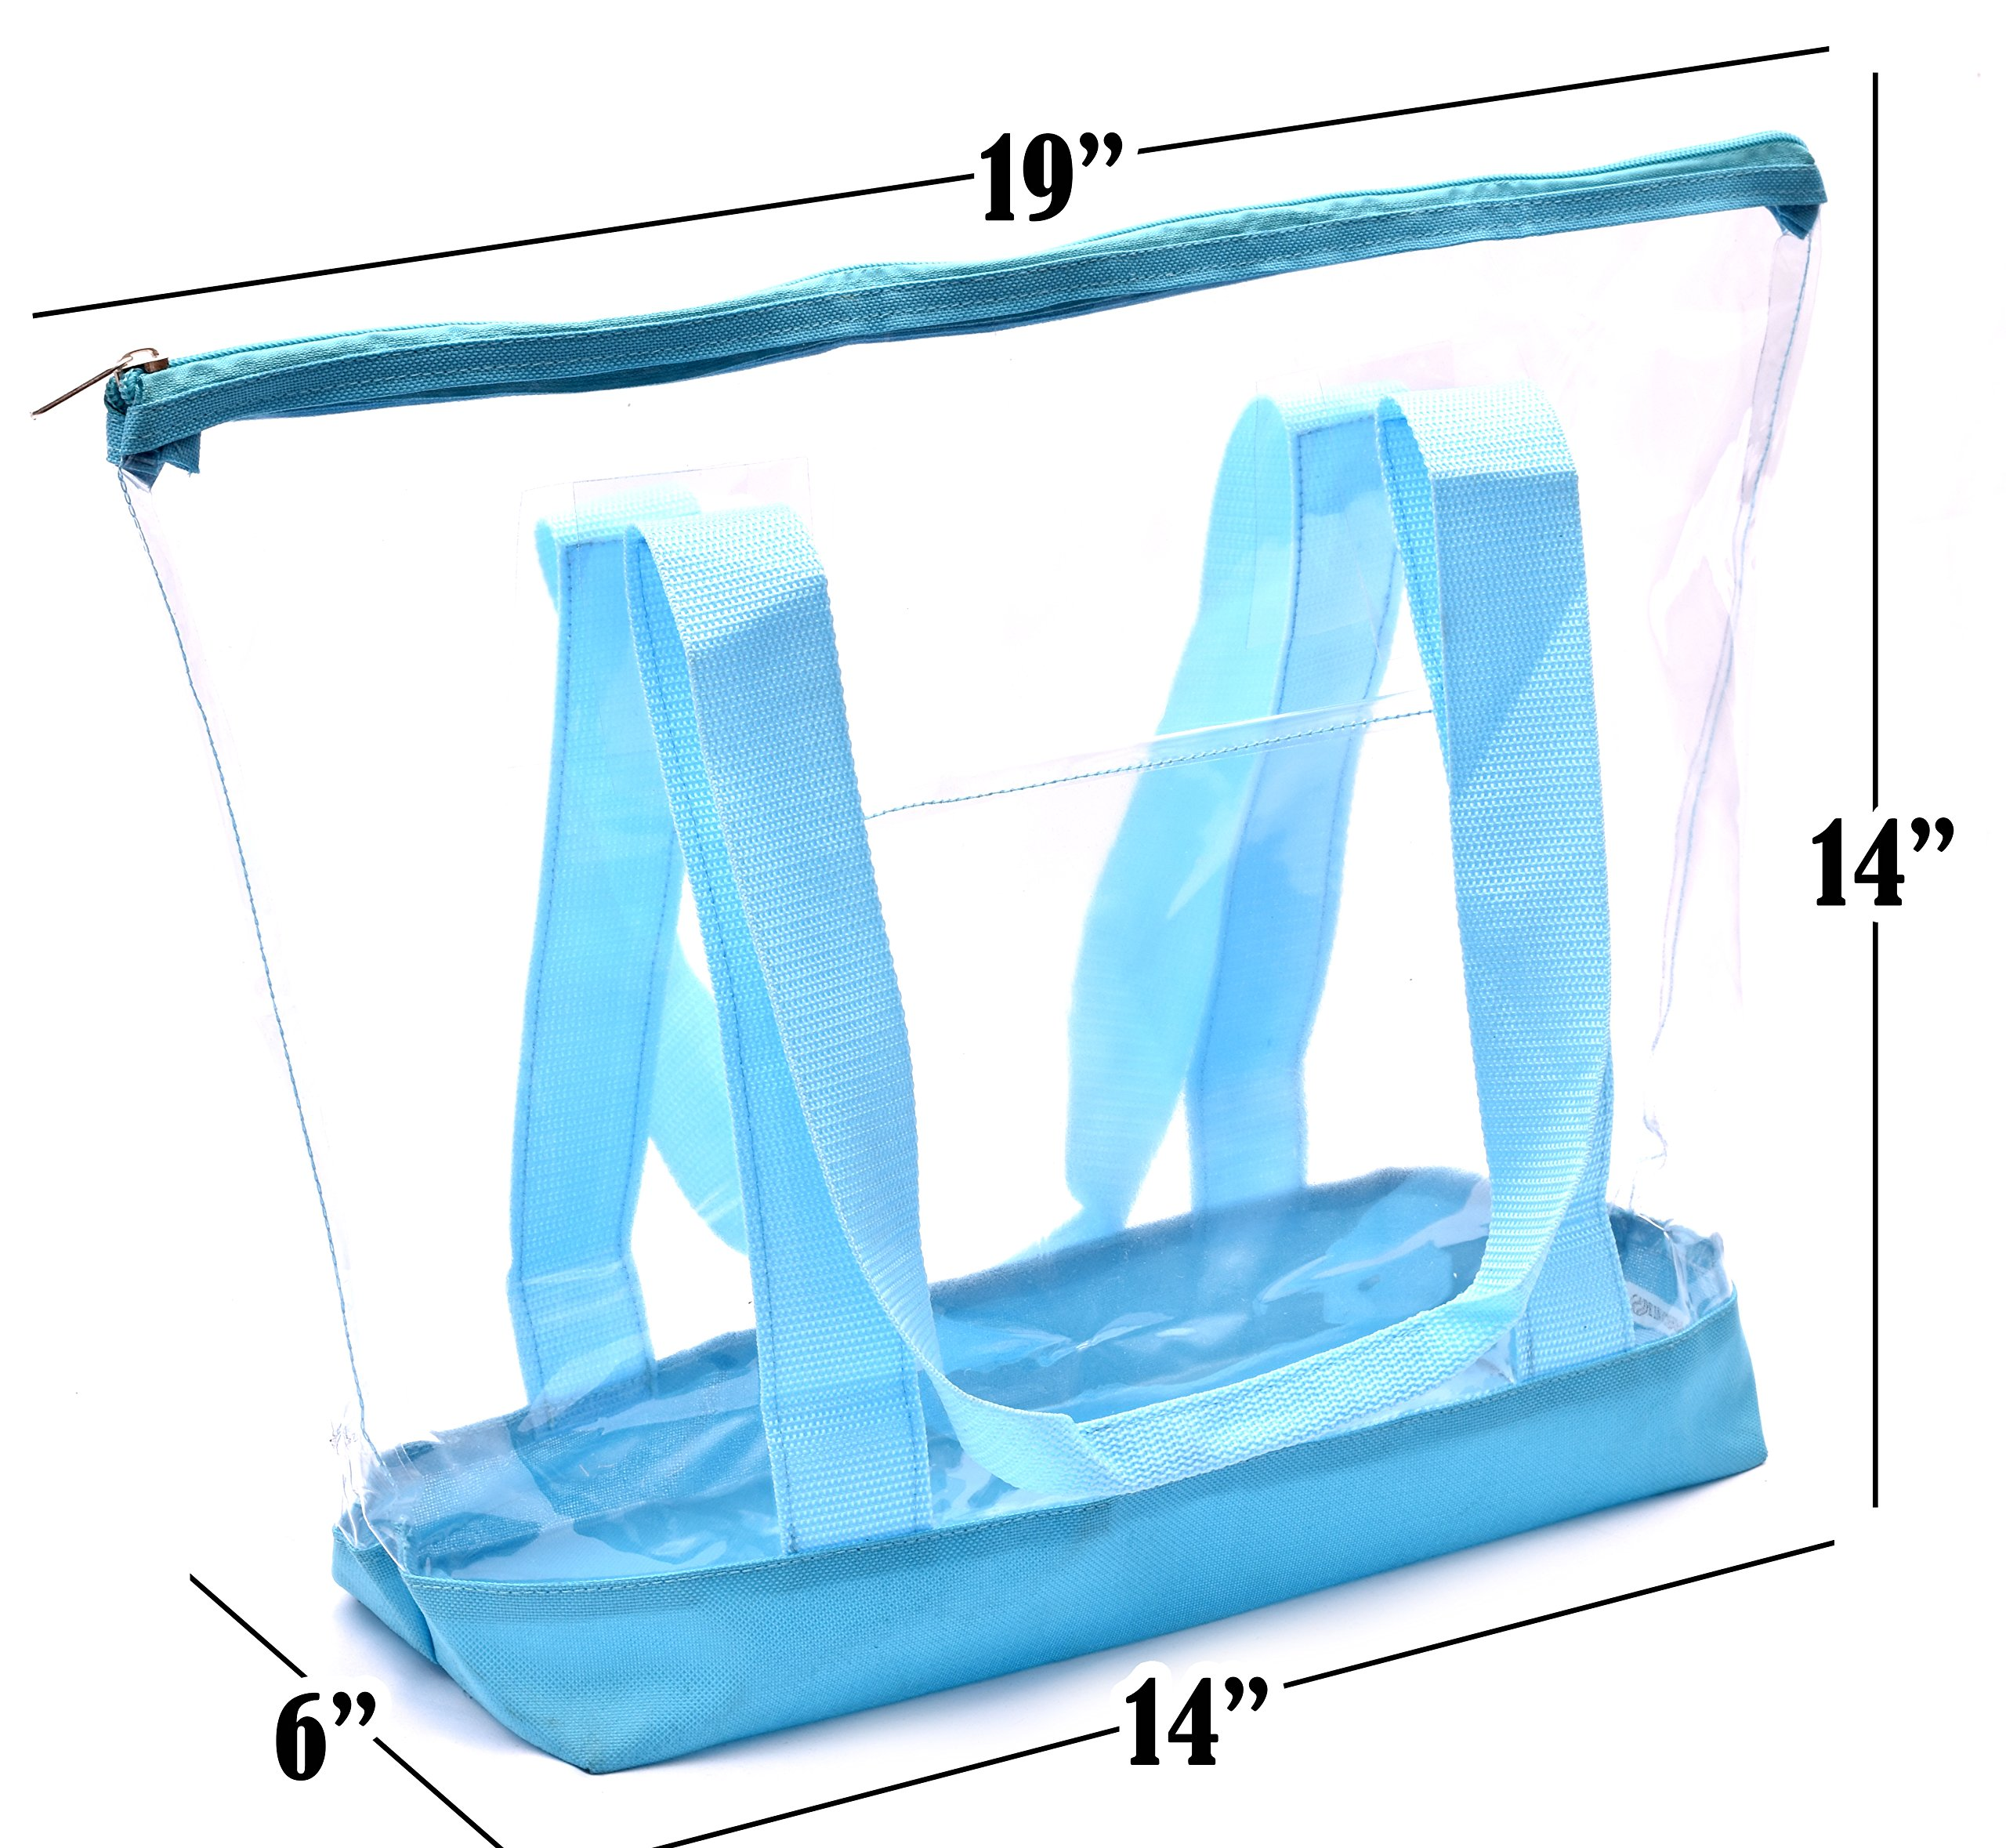 Clear Tote Bag - Top Zipper Closure, Long Shoulder Strap and Attractive Fabric Trimming. Perfect Transparent Travel Tote for all Places and Events where Clear Bags are Required. (Teal) by Handy Laundry (Image #3)